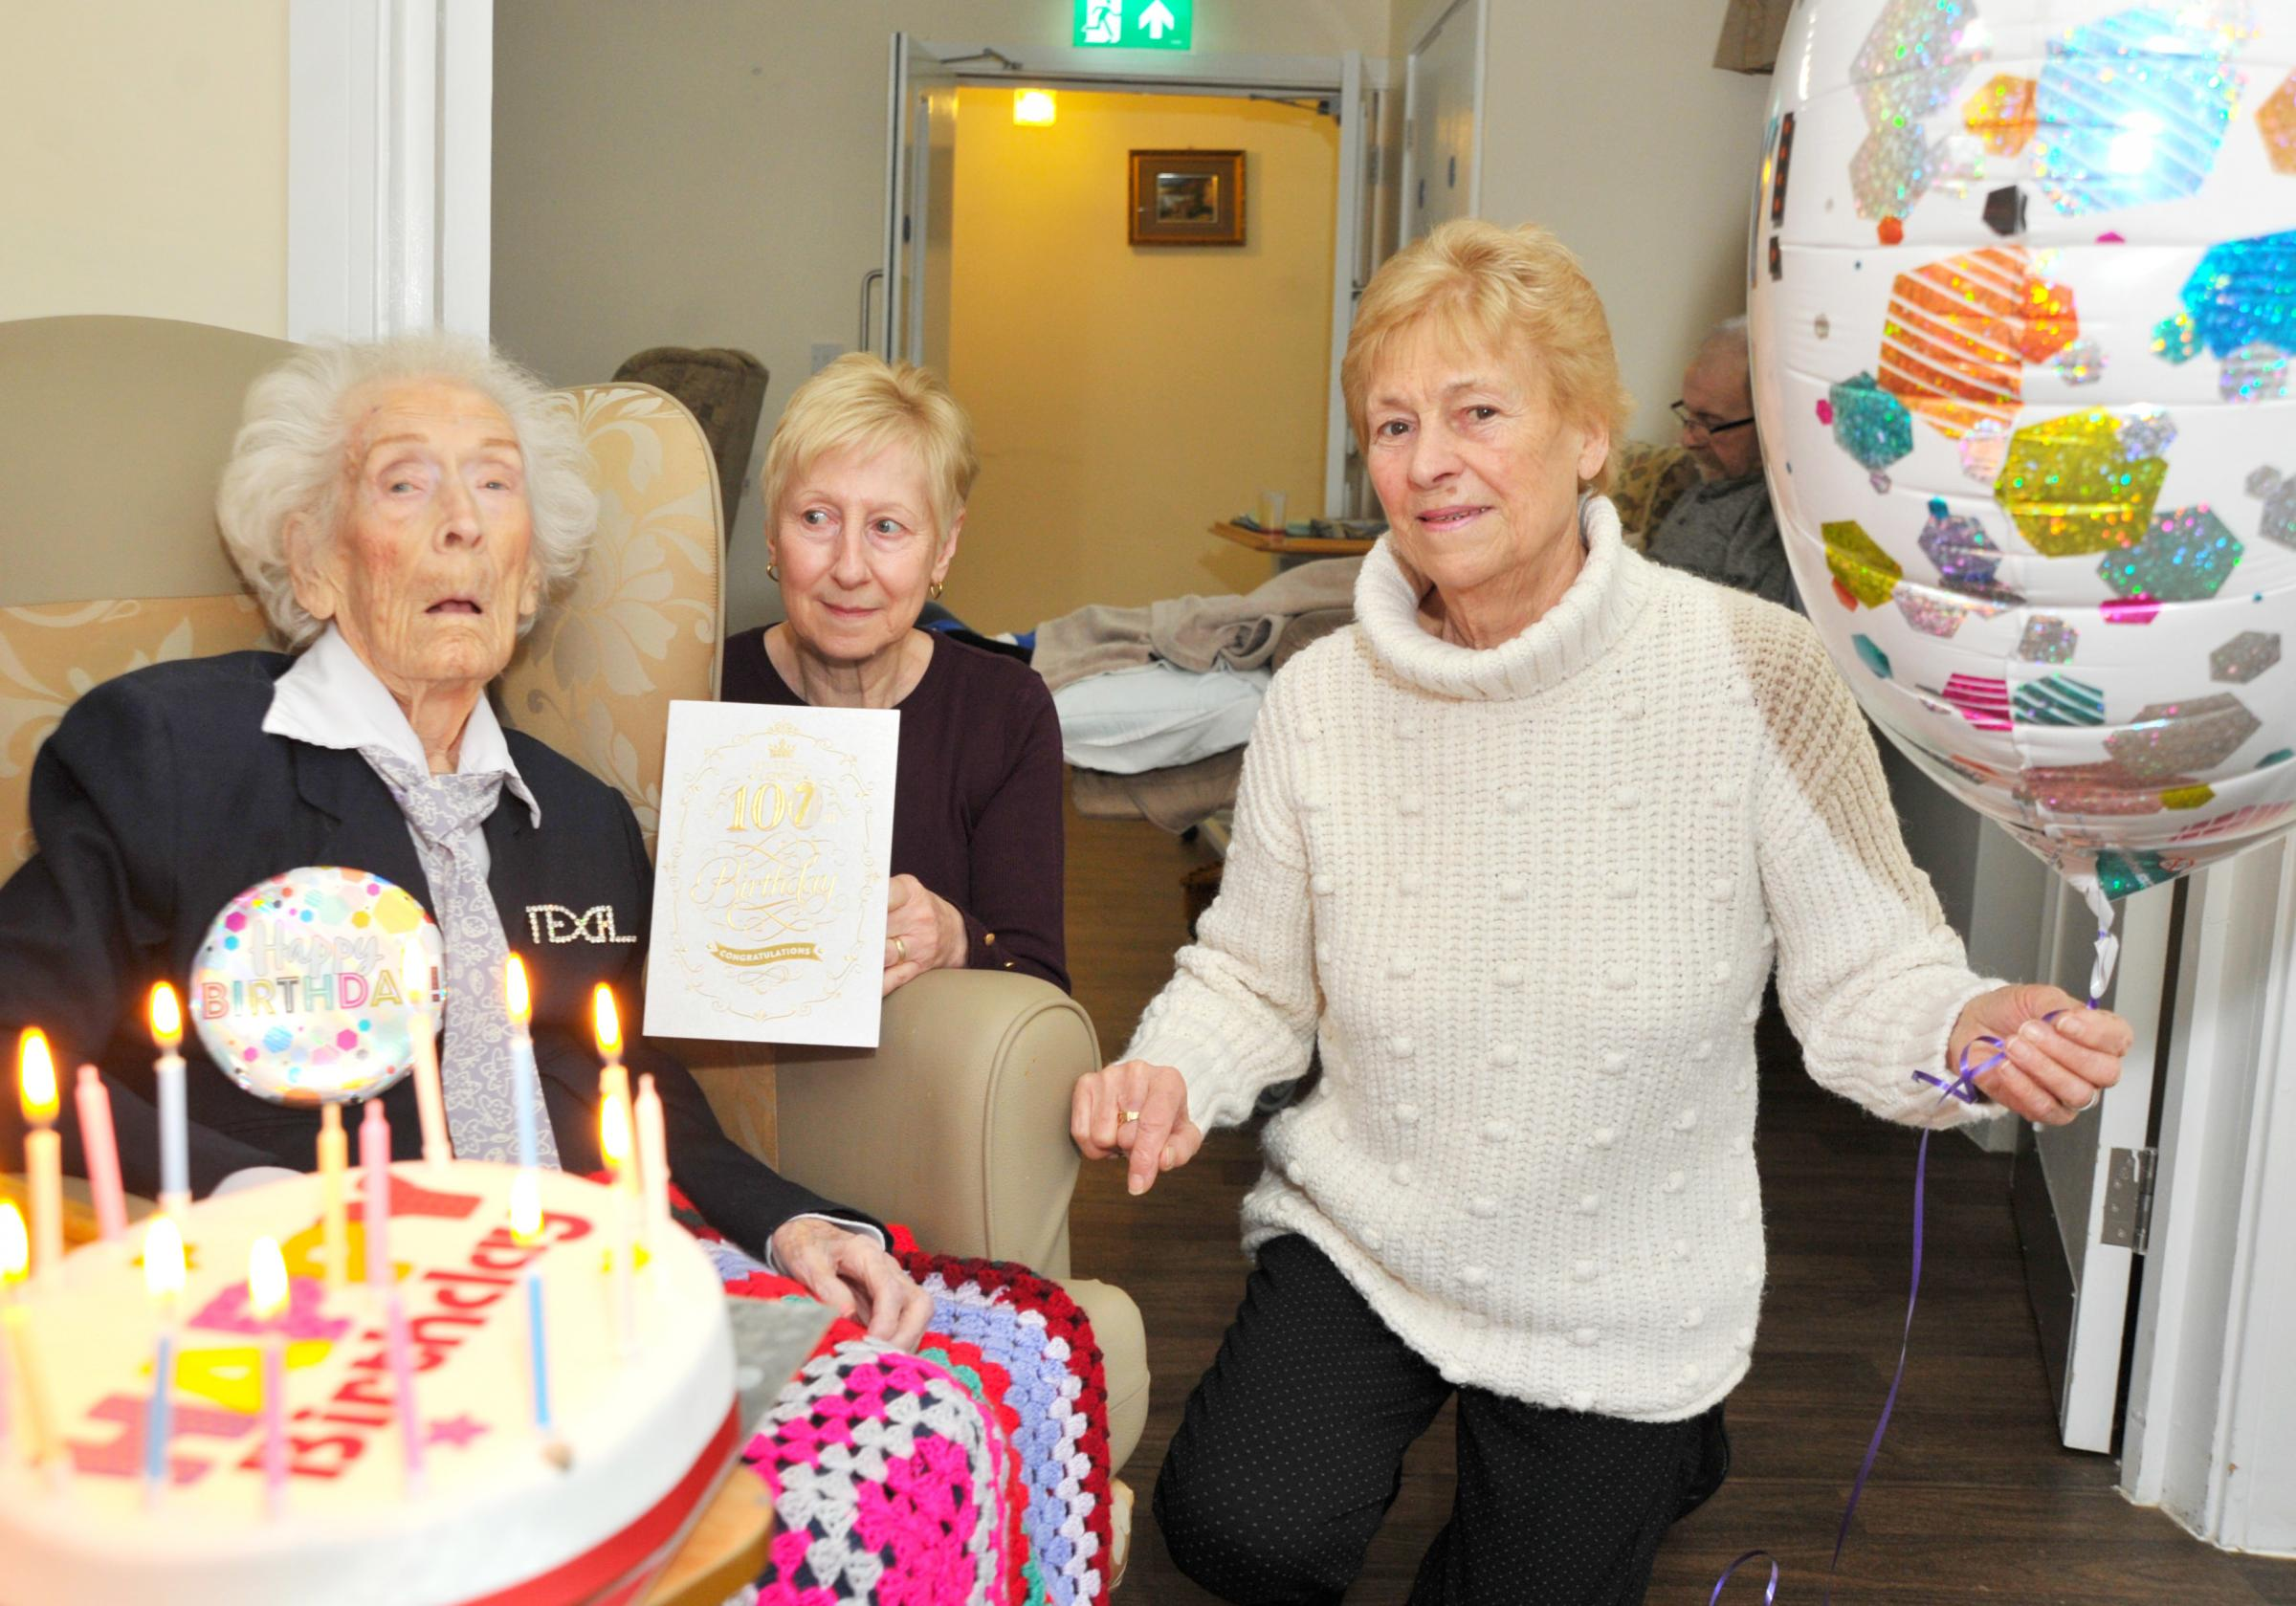 Cruises and keeping fit are 107-year-old's secret to a long life